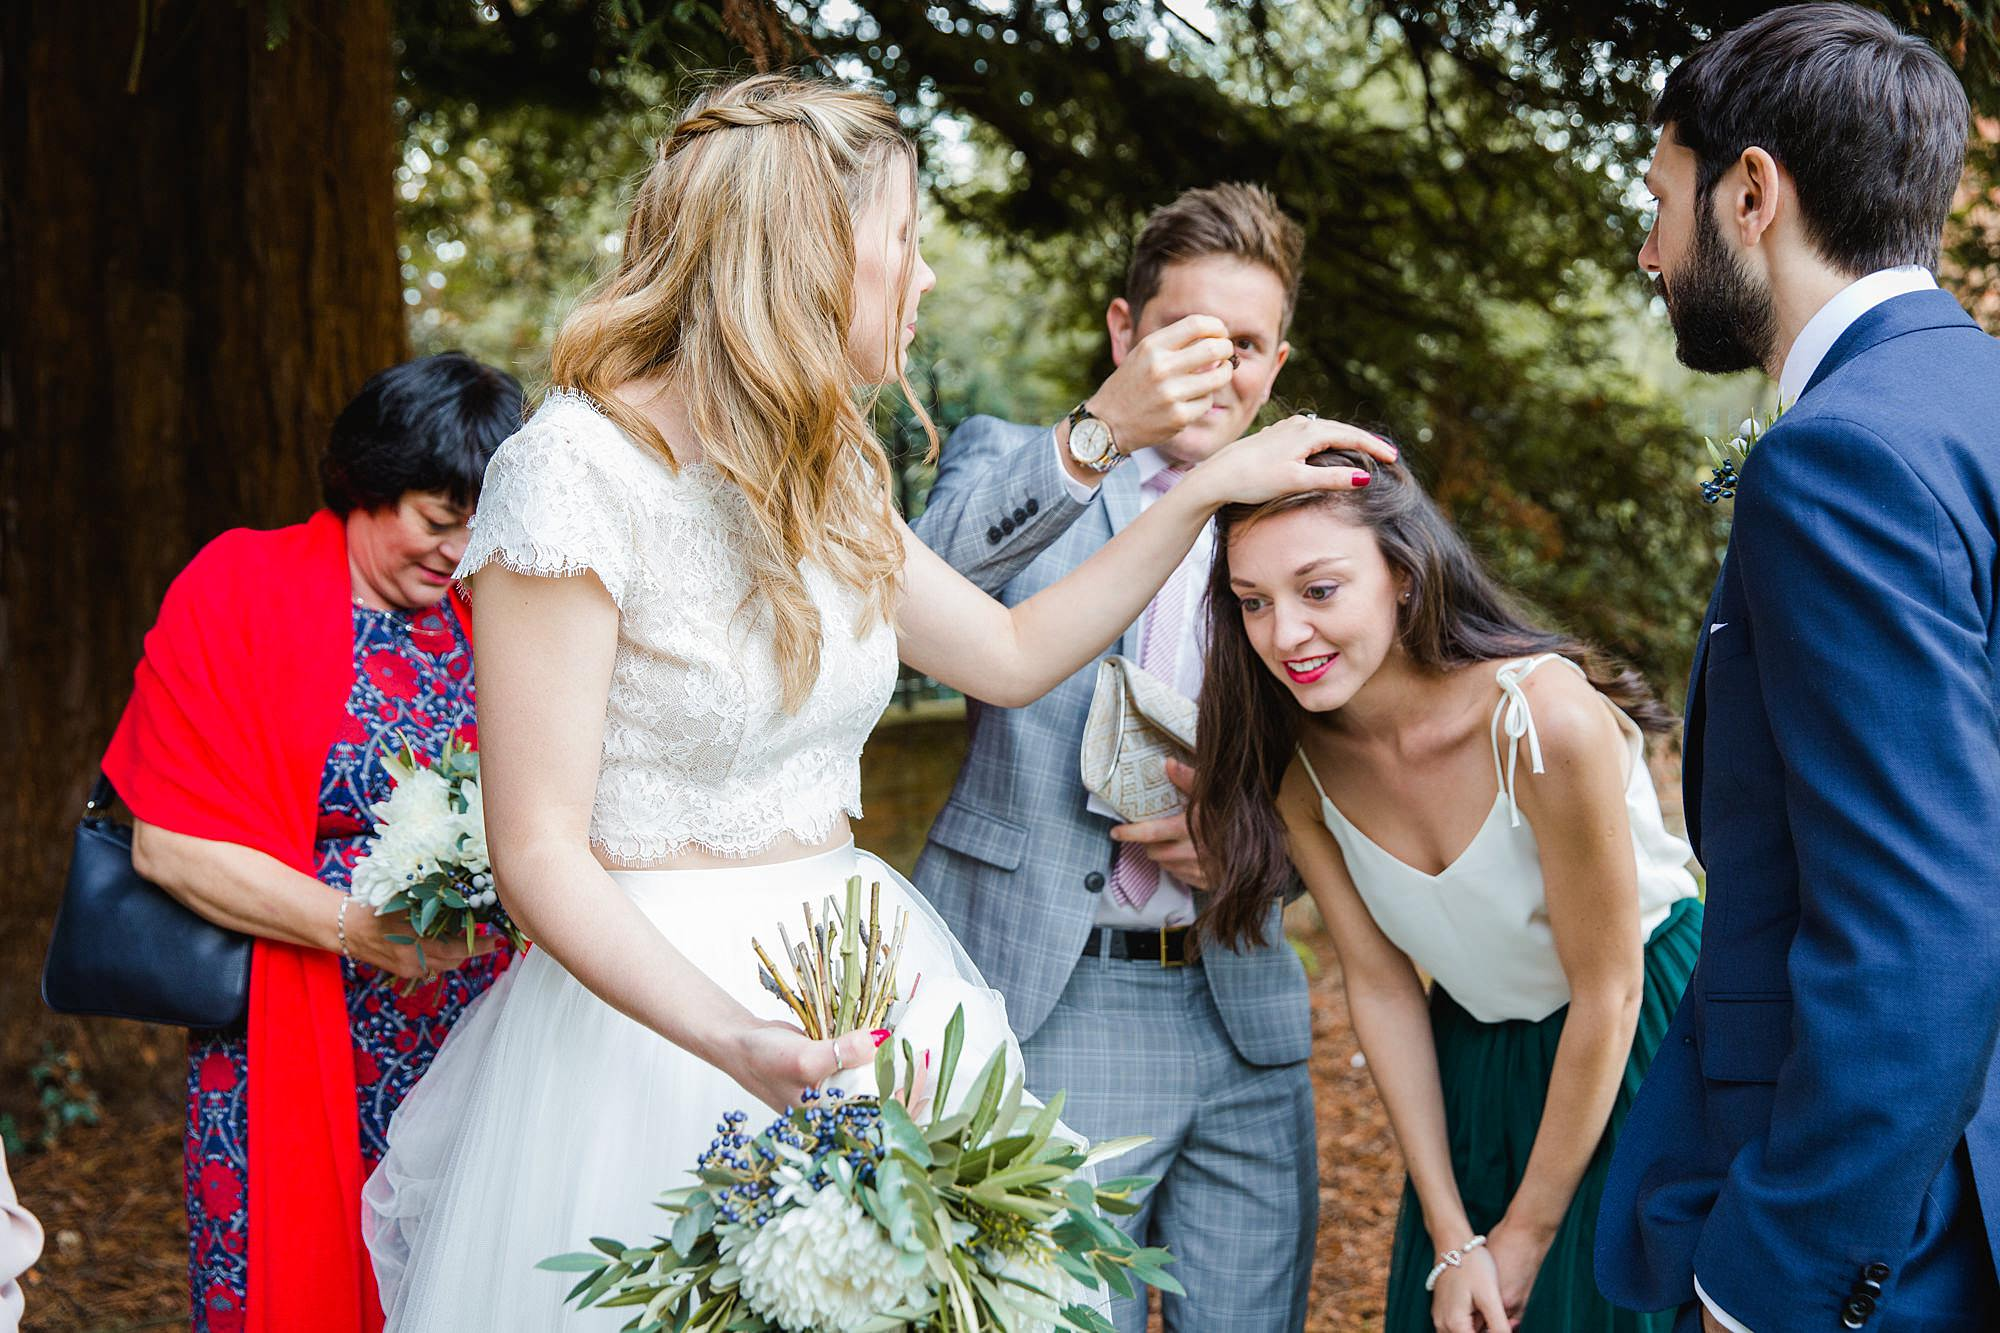 shaw house wedding bride getting confetti out of bridesmaid's hair